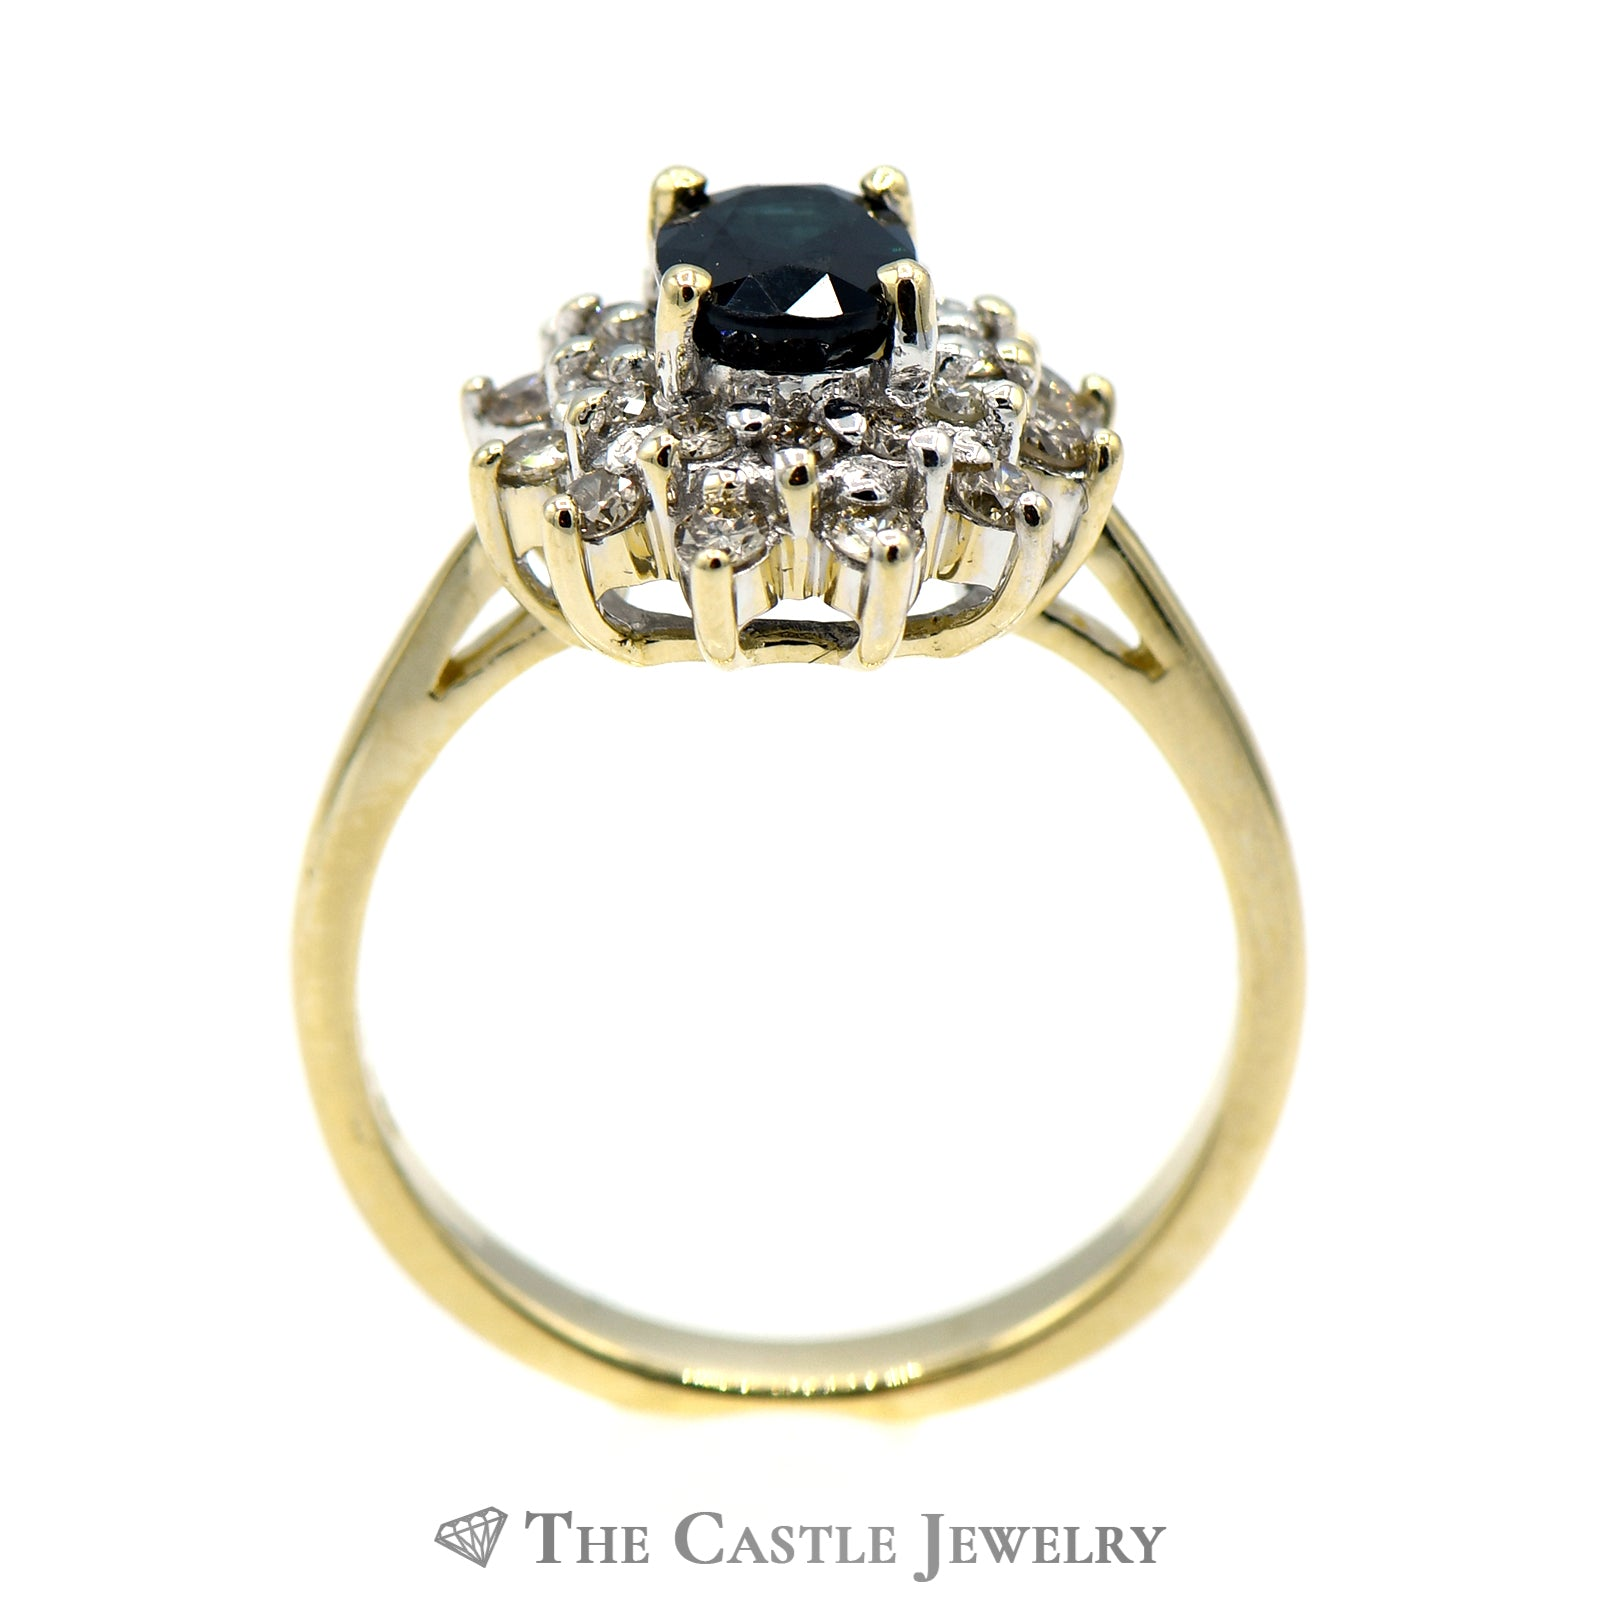 Dark Blue Sapphire Ring Surrounded by Layered Diamond Halo-1